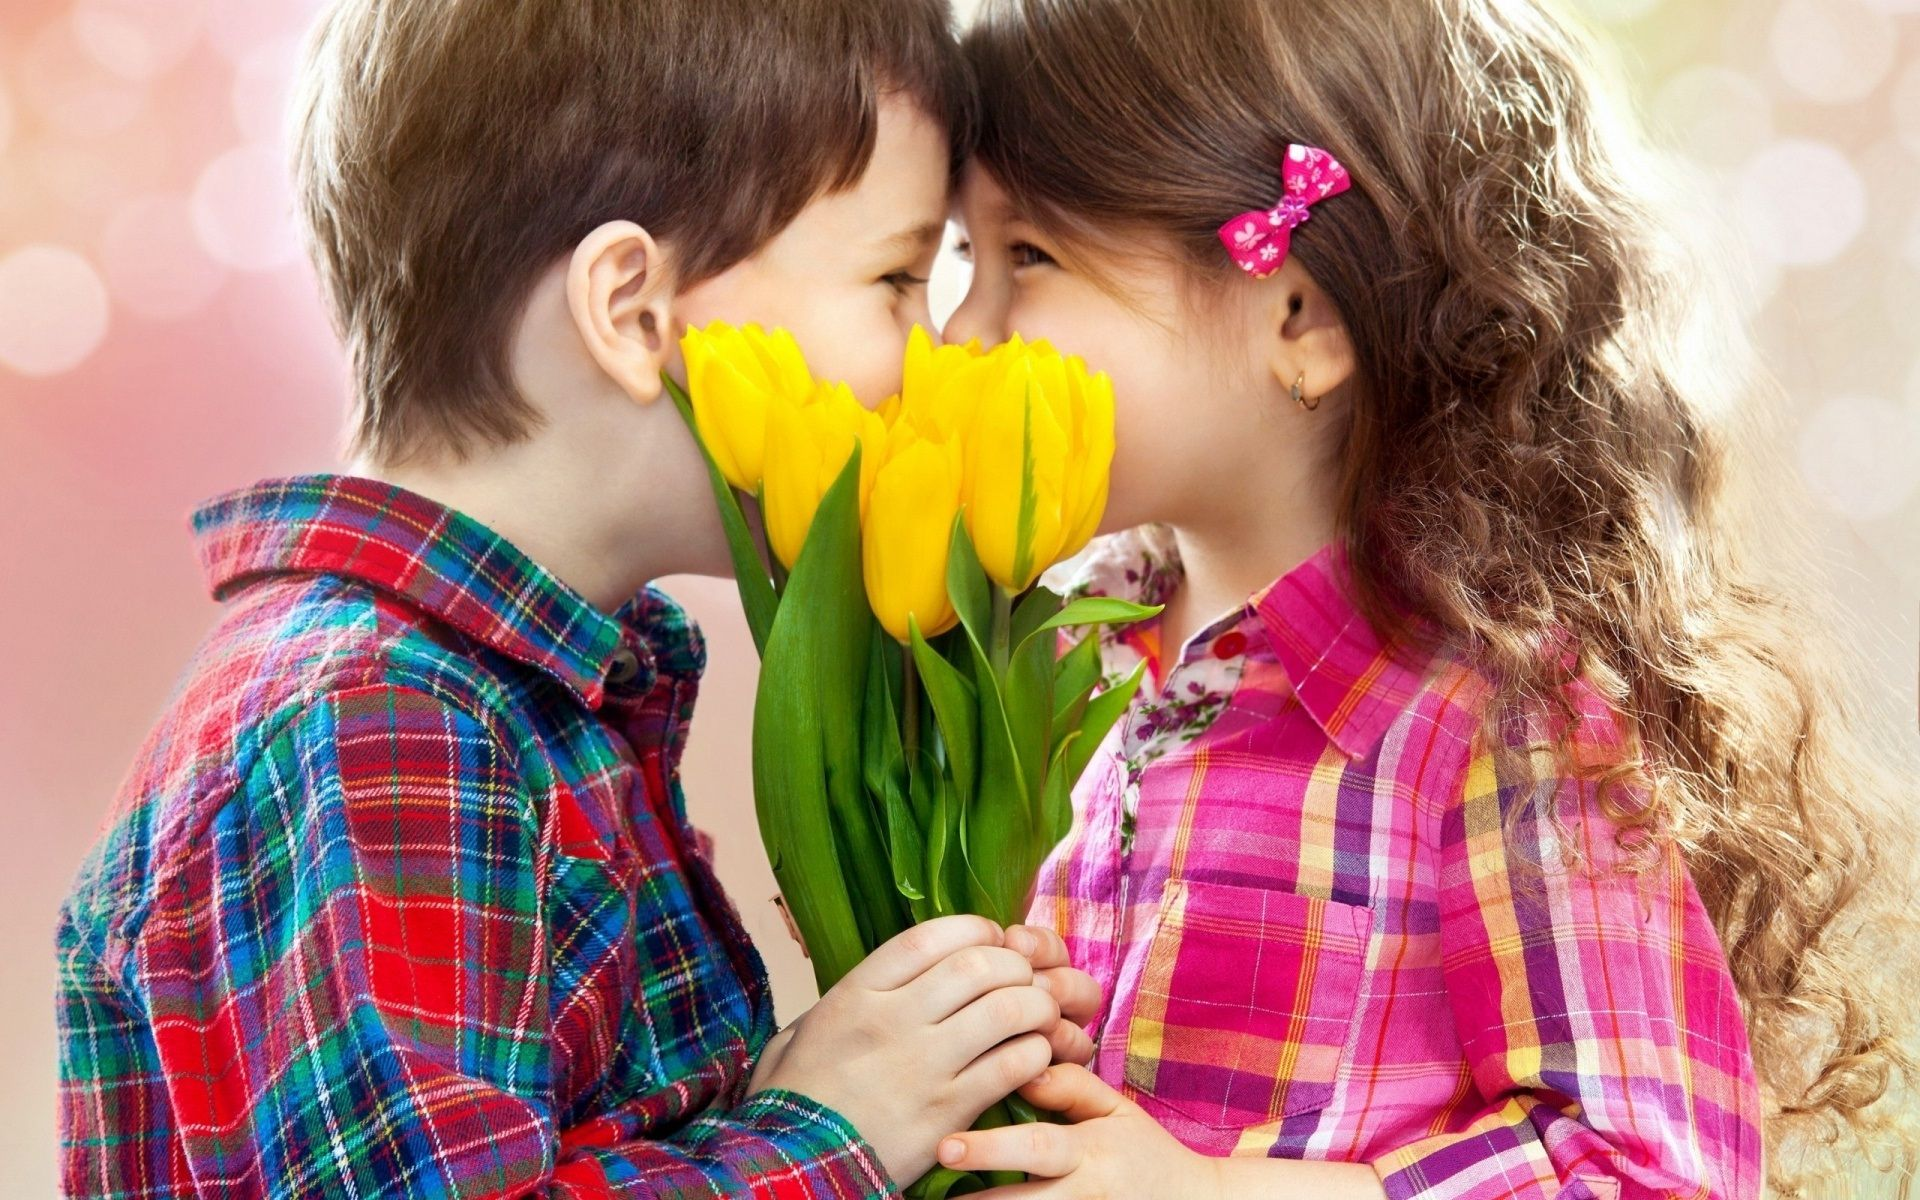 Wallpaper collection Romantic Love couple Kissing : Baby couple Wallpaper Widescreen cute Wallpapers Pinterest More couple wallpaper and ...